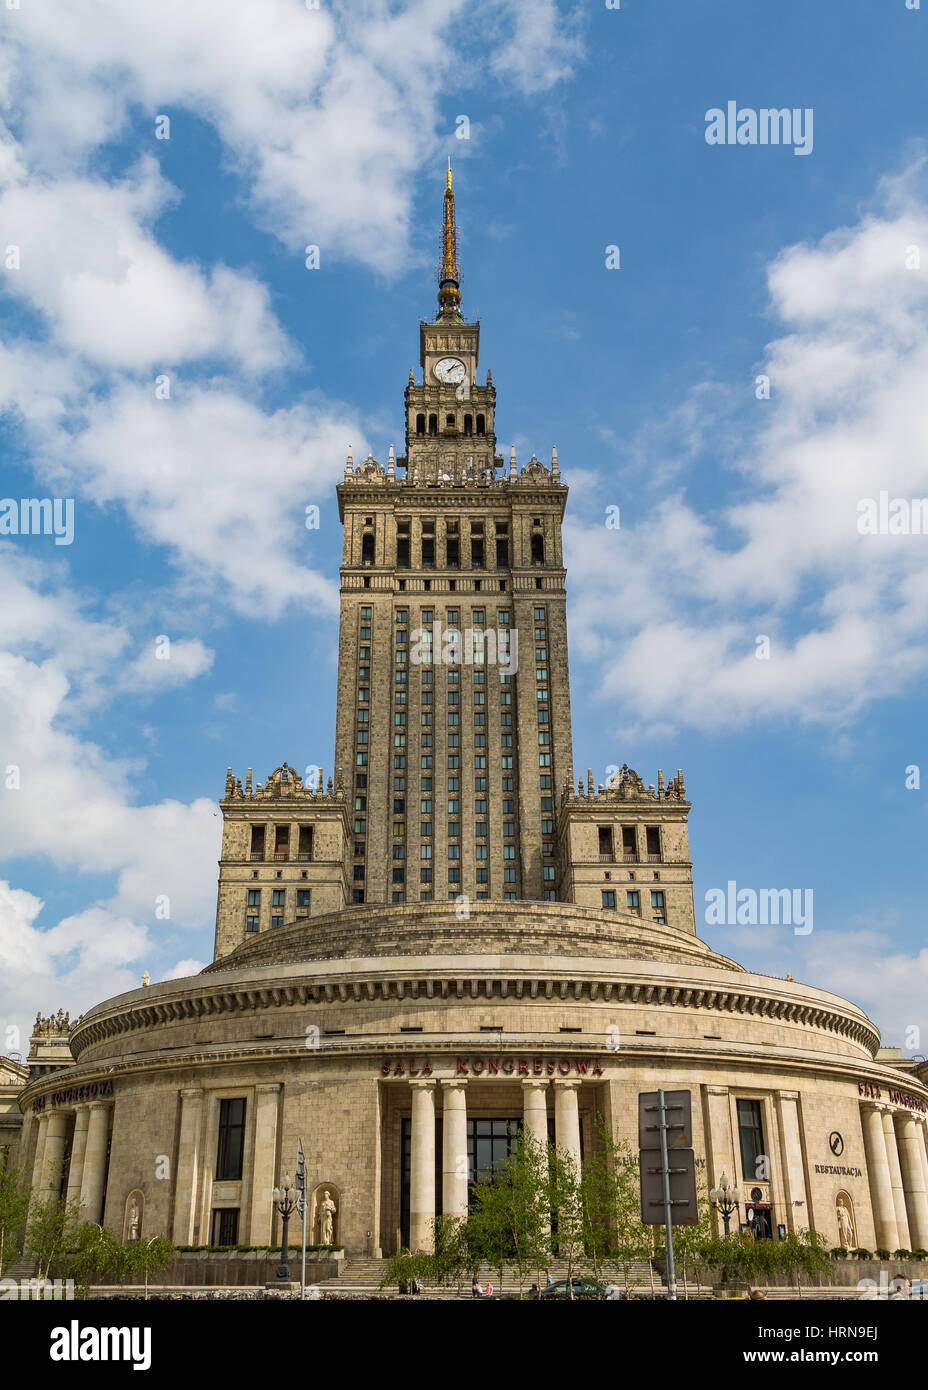 The Palace of Culture and Science in Warsaw, an example of Stalinist architecture - Stock Image